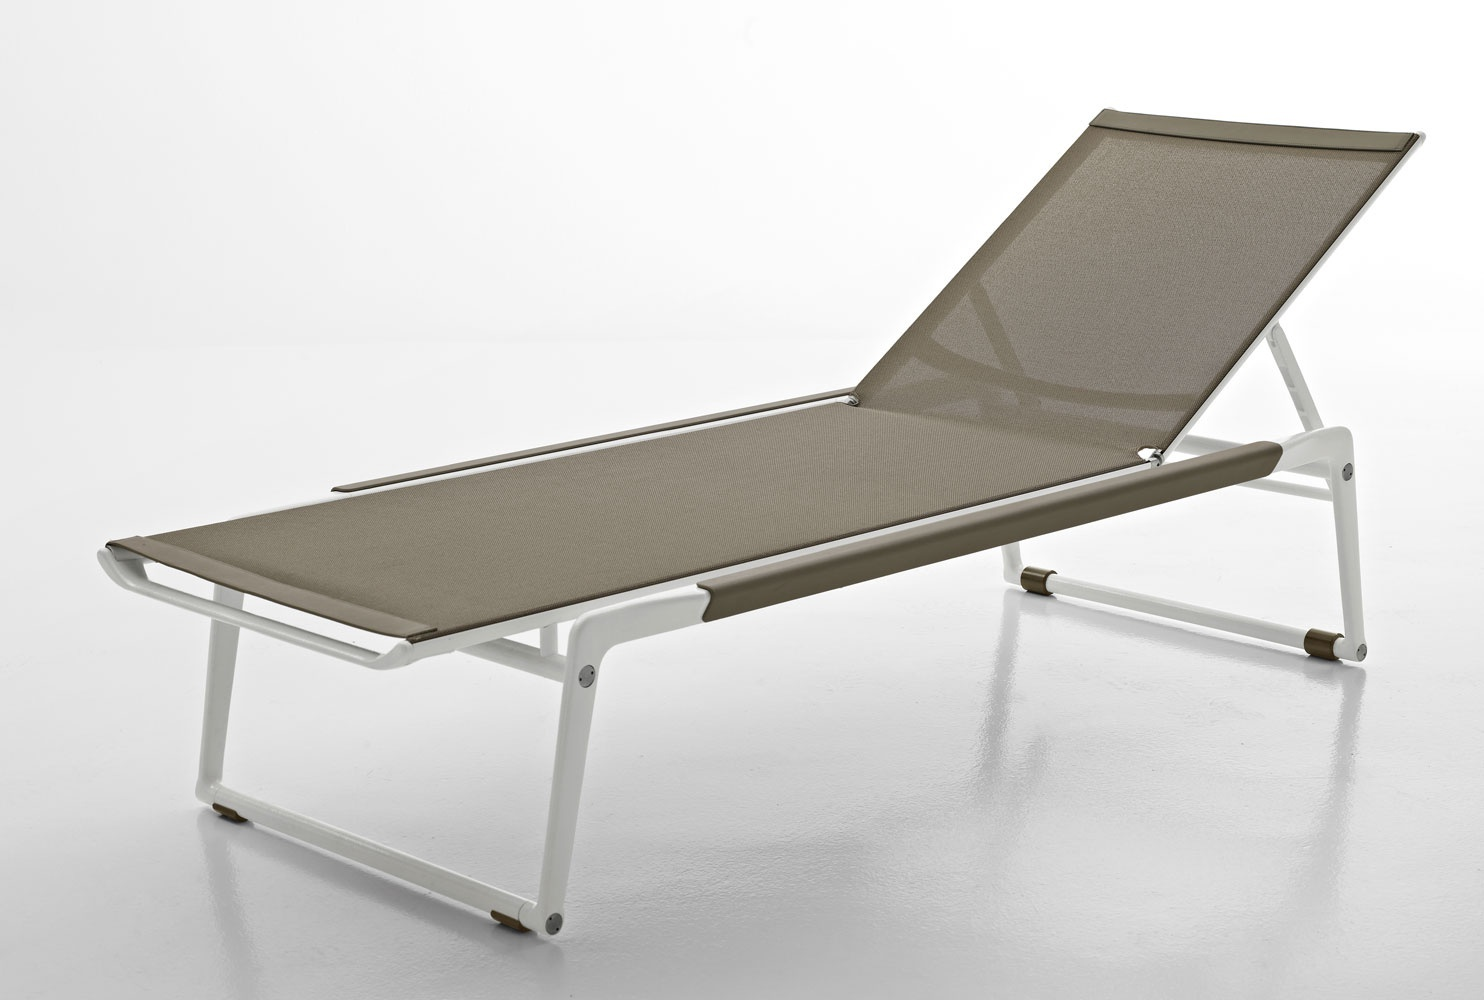 Mirto chaise lounge cast aluminum and plastic b b italia for Chaise longue 200 cm